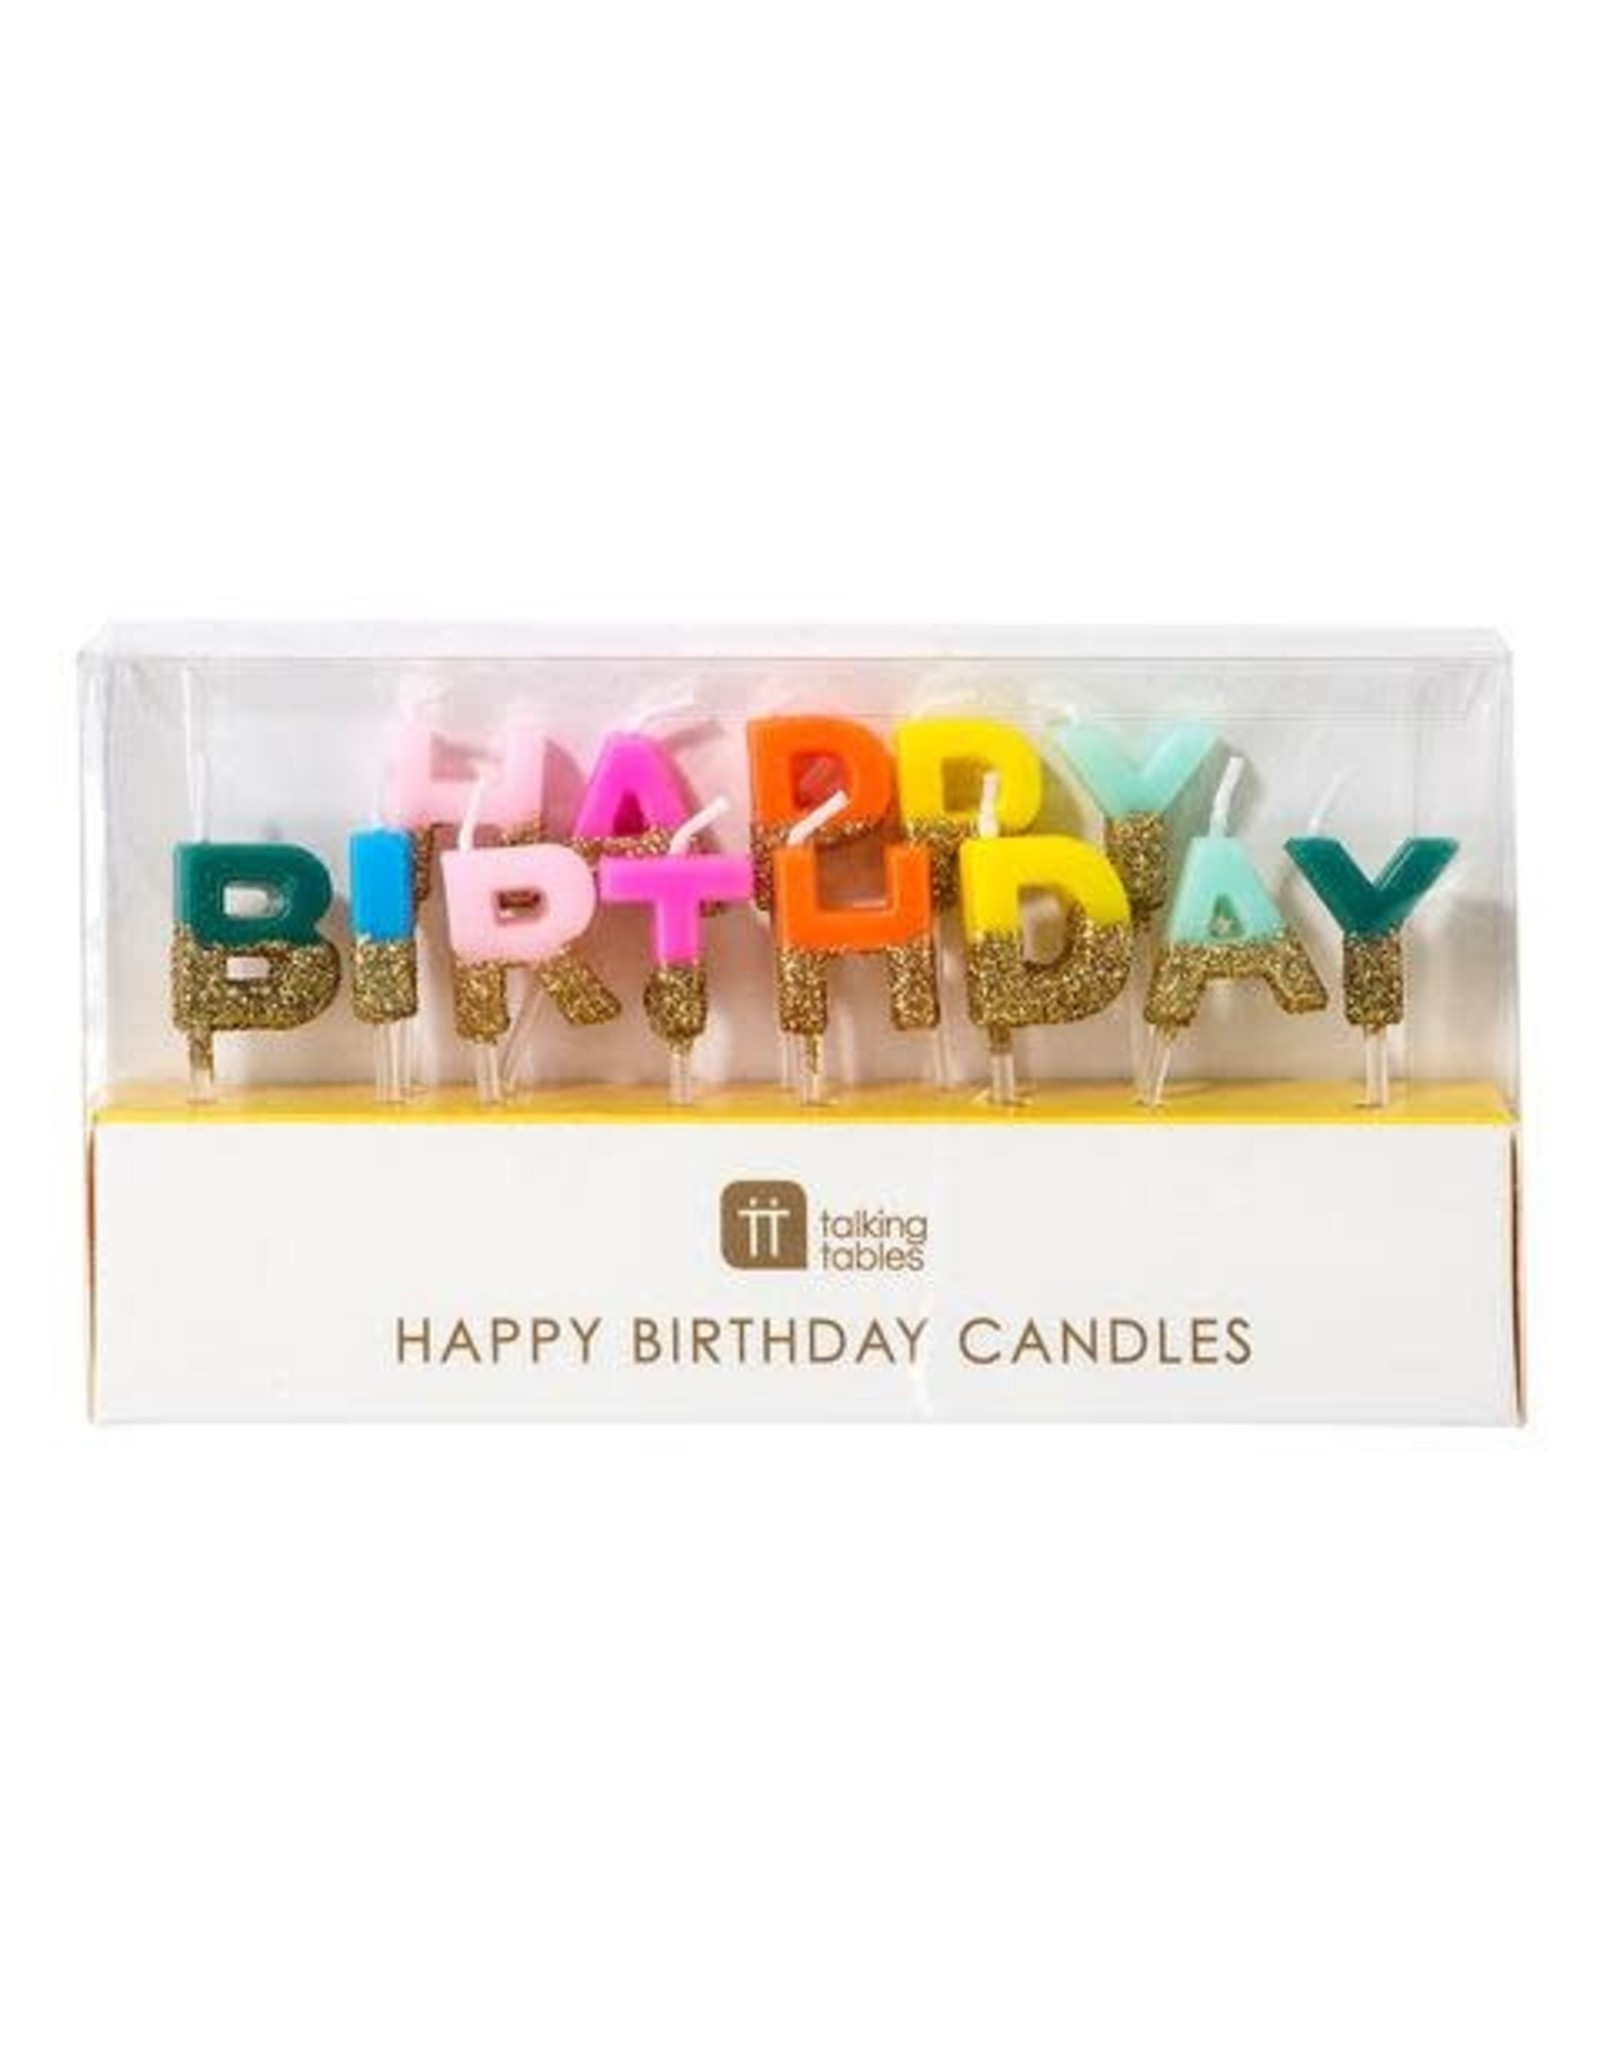 Happy Birthday Candles, glitter dipped